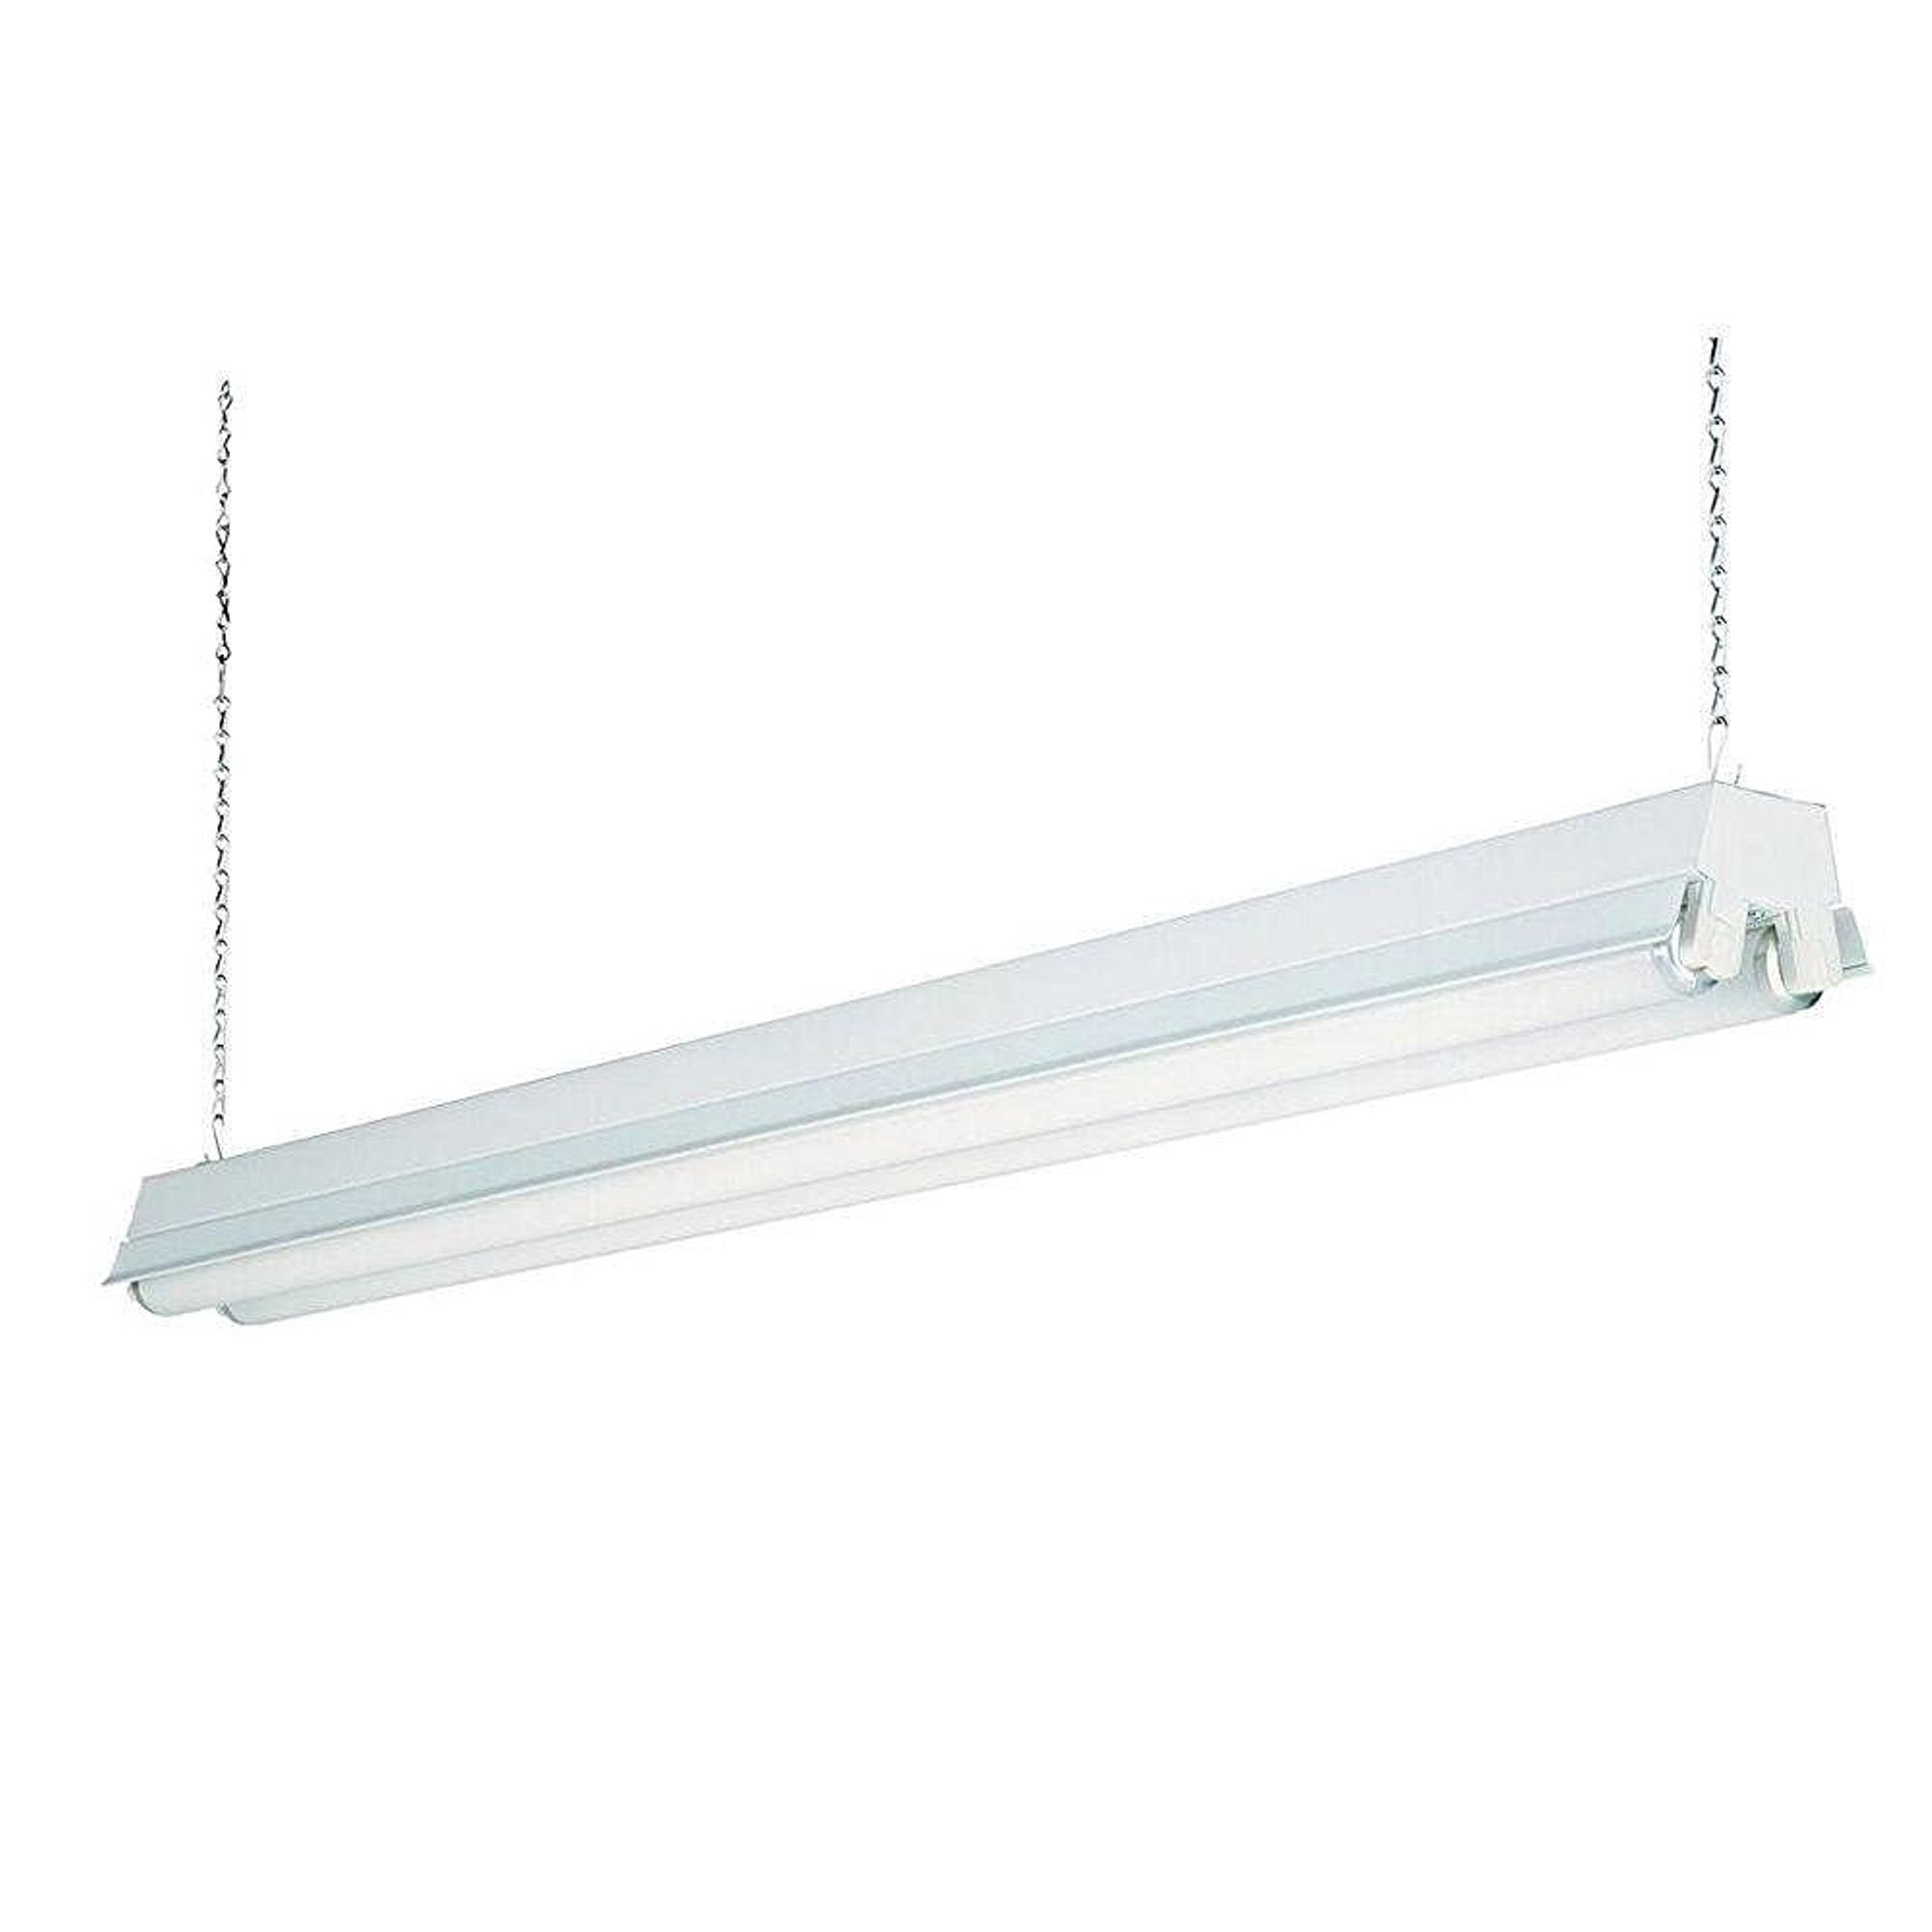 Details about lithonia 48 in l 2 lights t8 fluorescent light fixture white